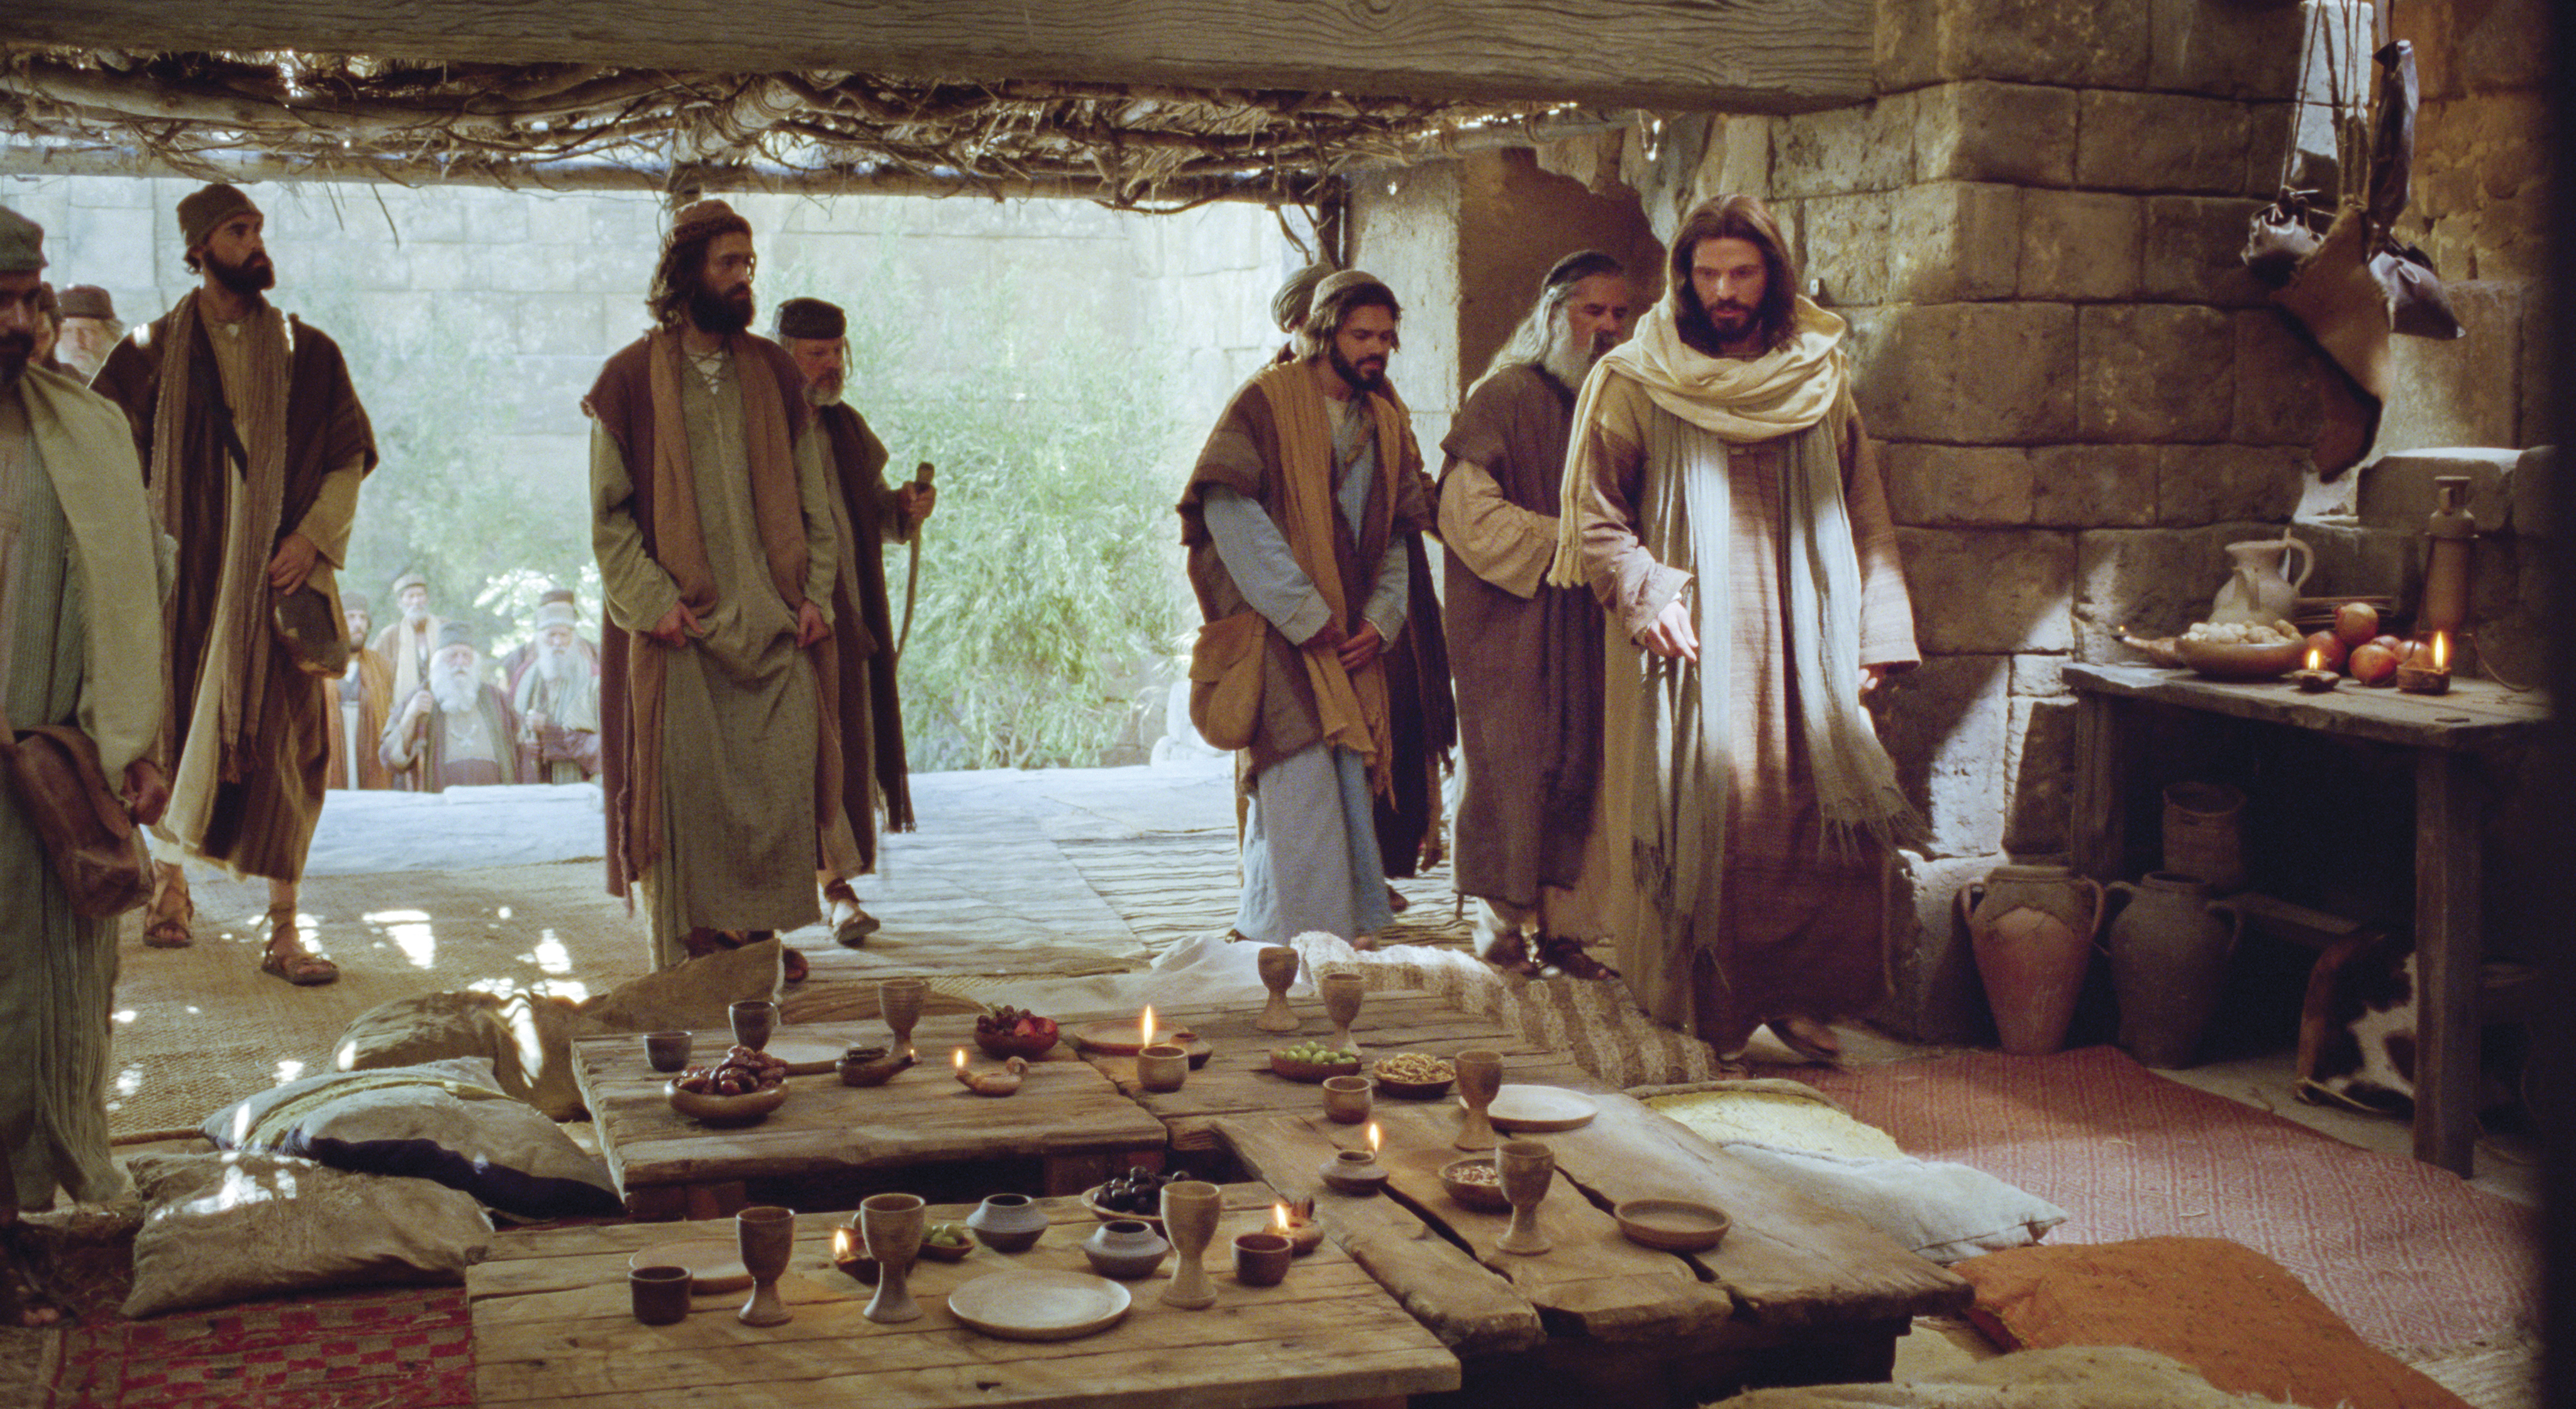 Jesus and His disciples prepare for a meal and to be taught.